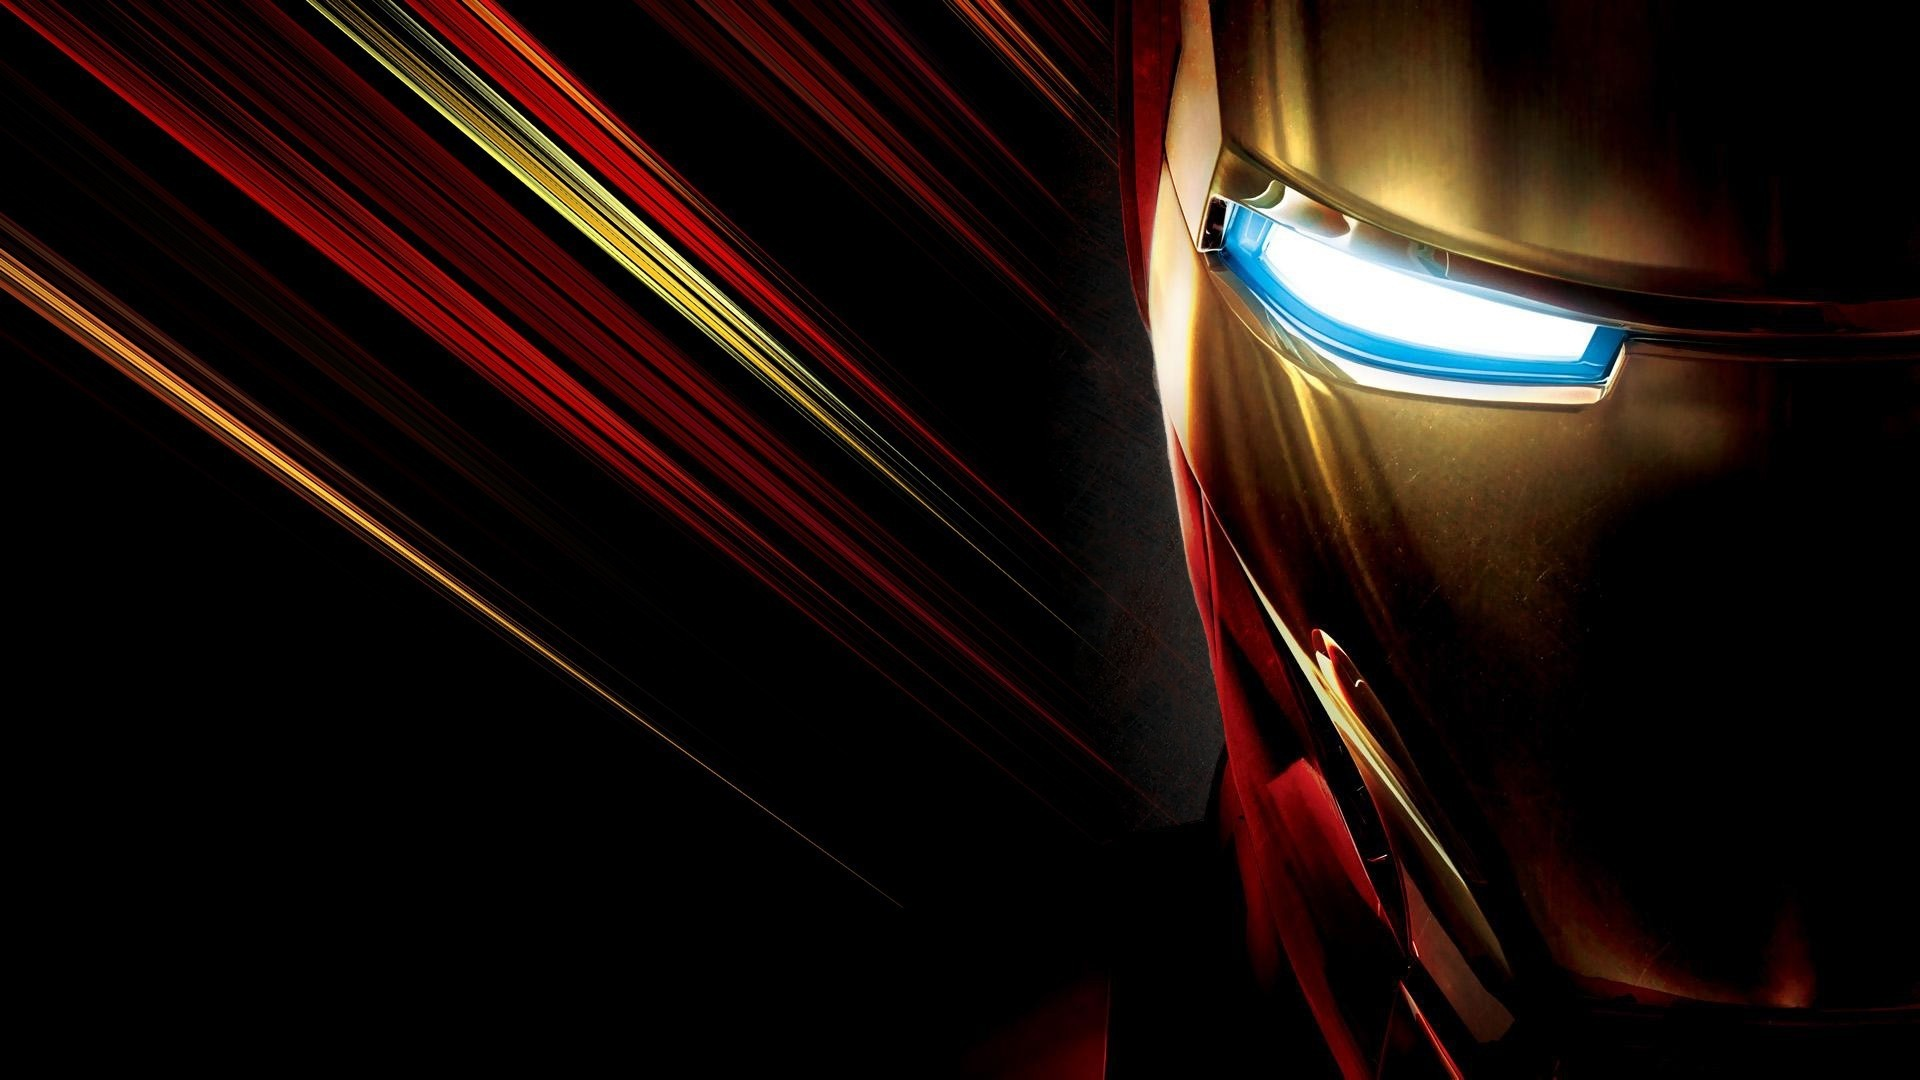 1920x1080 avenger iron man hd wallpaper